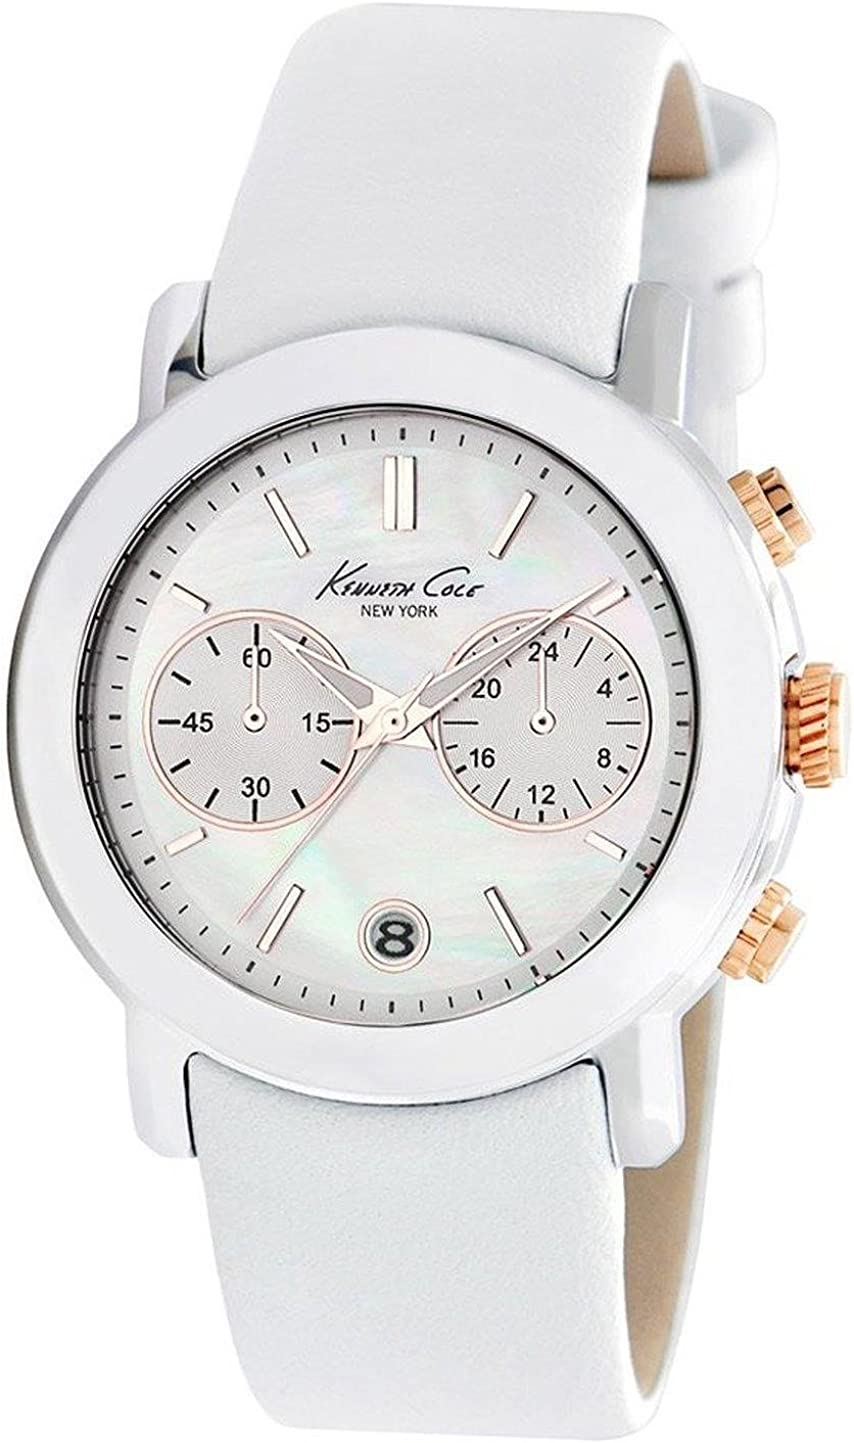 Kenneth Cole New York Womens Water Resistant Leather Wristwatch Silver O S